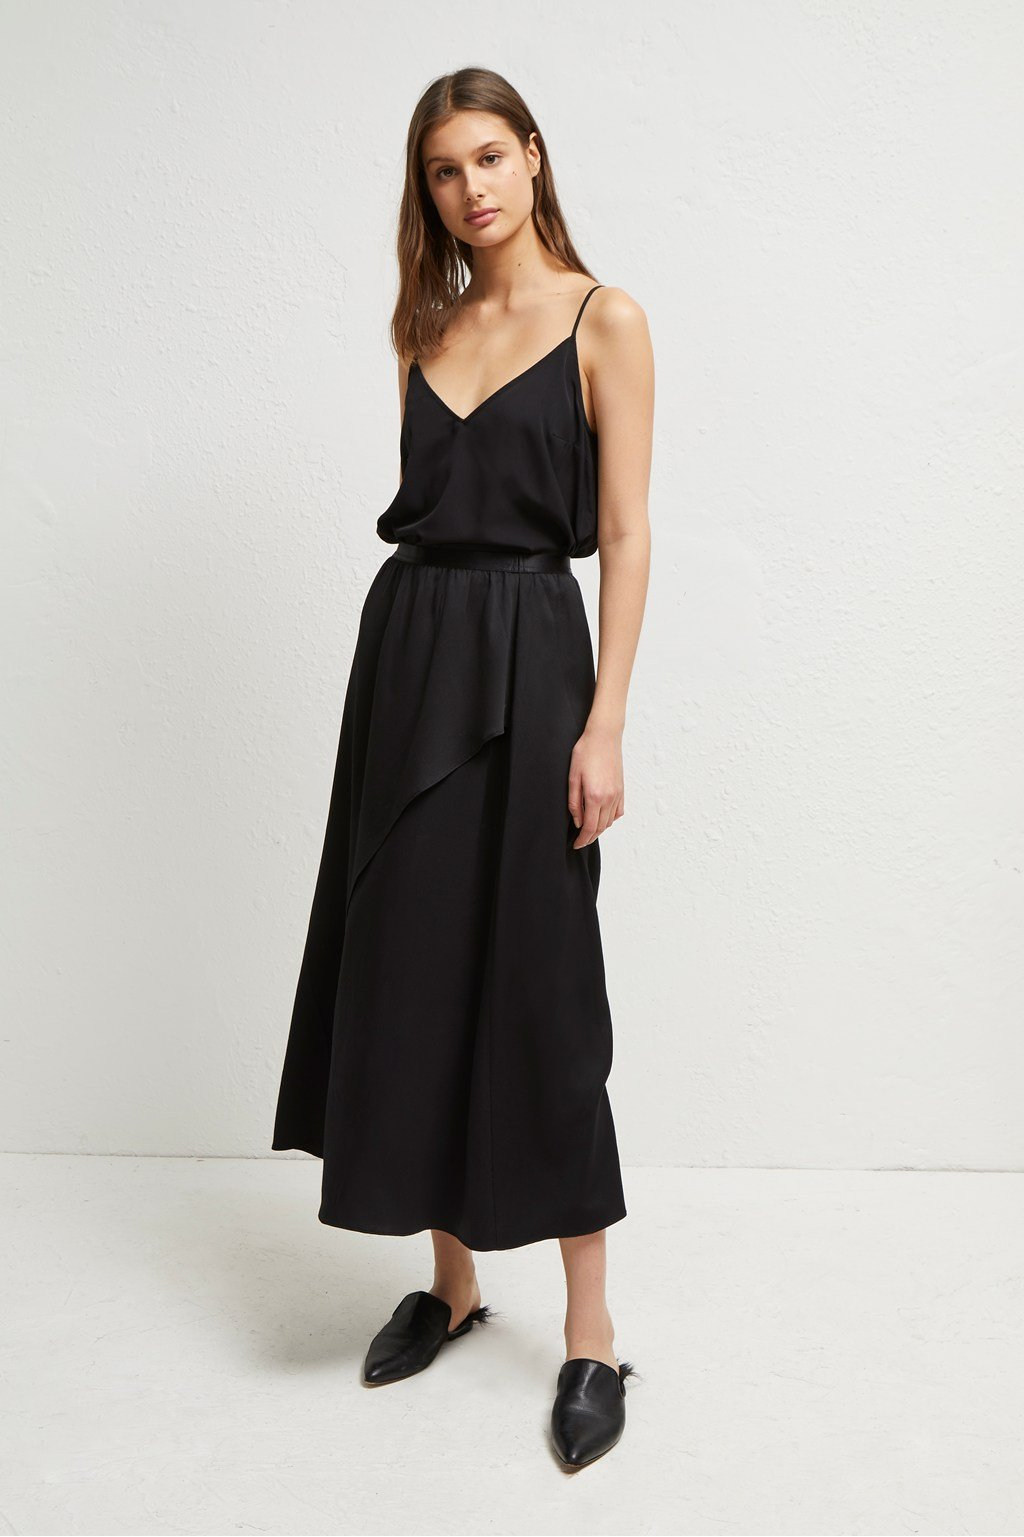 french-connection-alessia-satin-midi-wrap-skirt-black-eva-lucia-boutique-perth-scotland